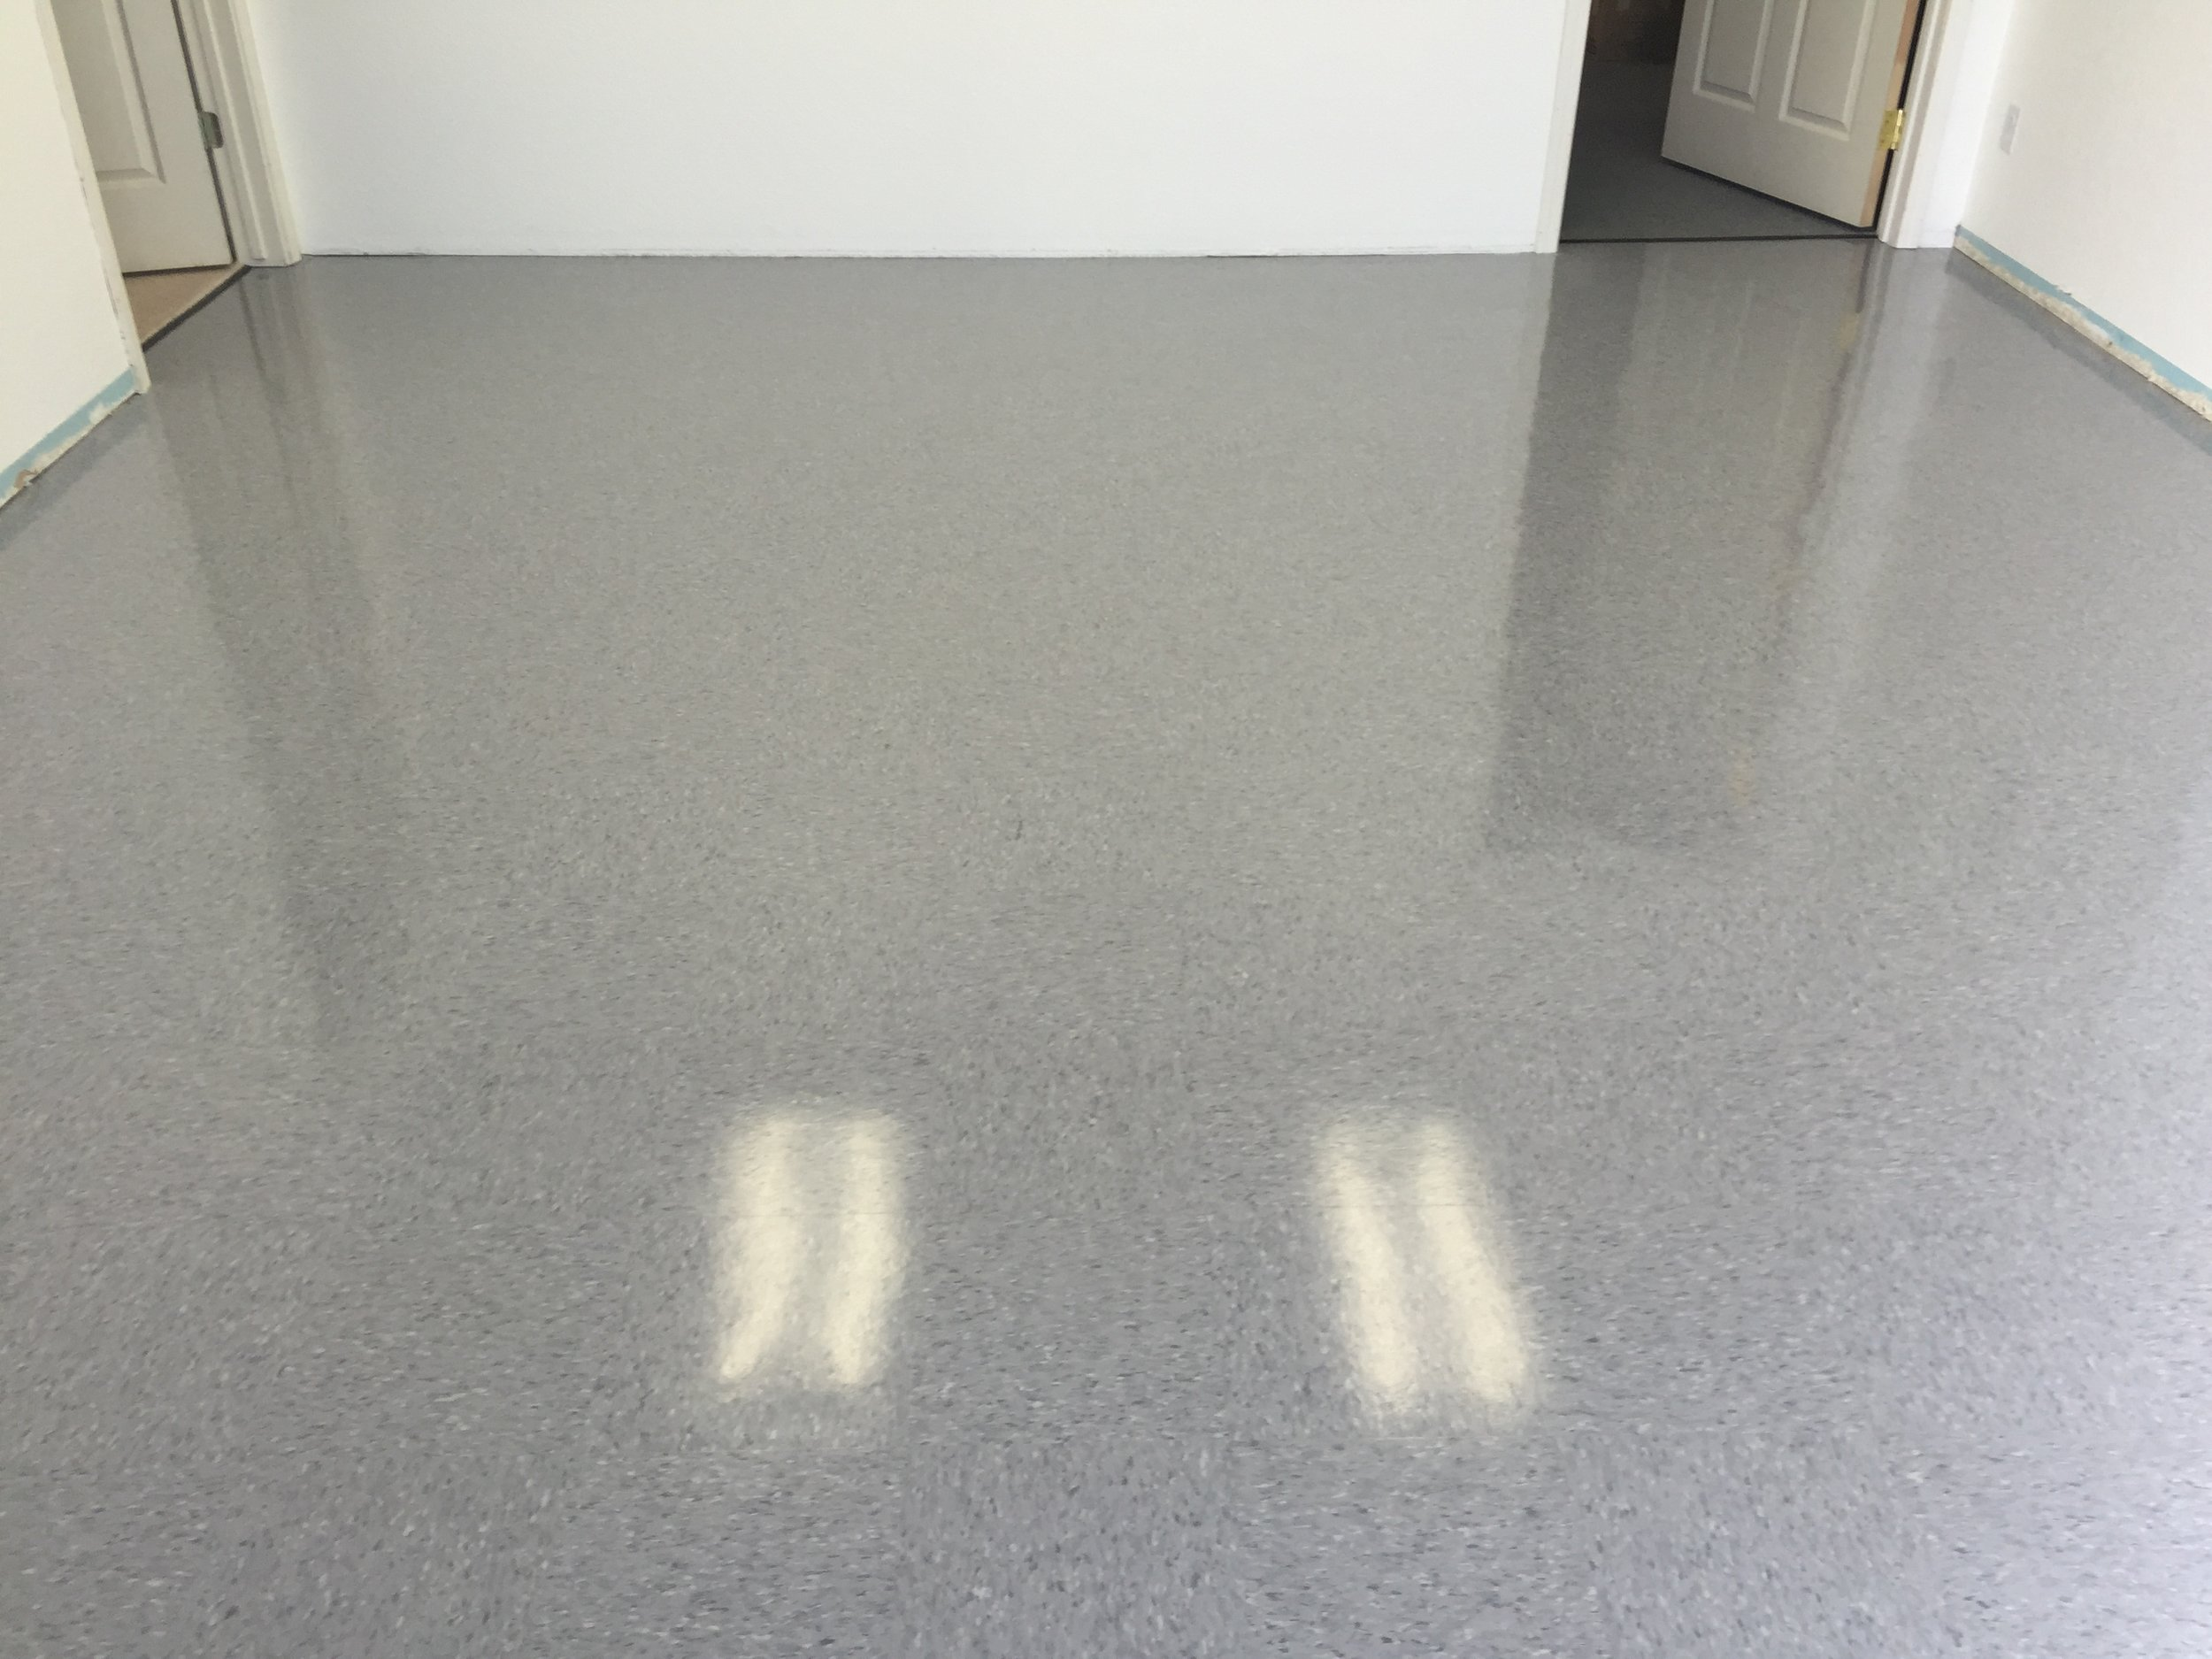 Floor coated and will never have to be burnished or re-waxed again. Coating lasts 5 years or more, before possible touch up is needed.